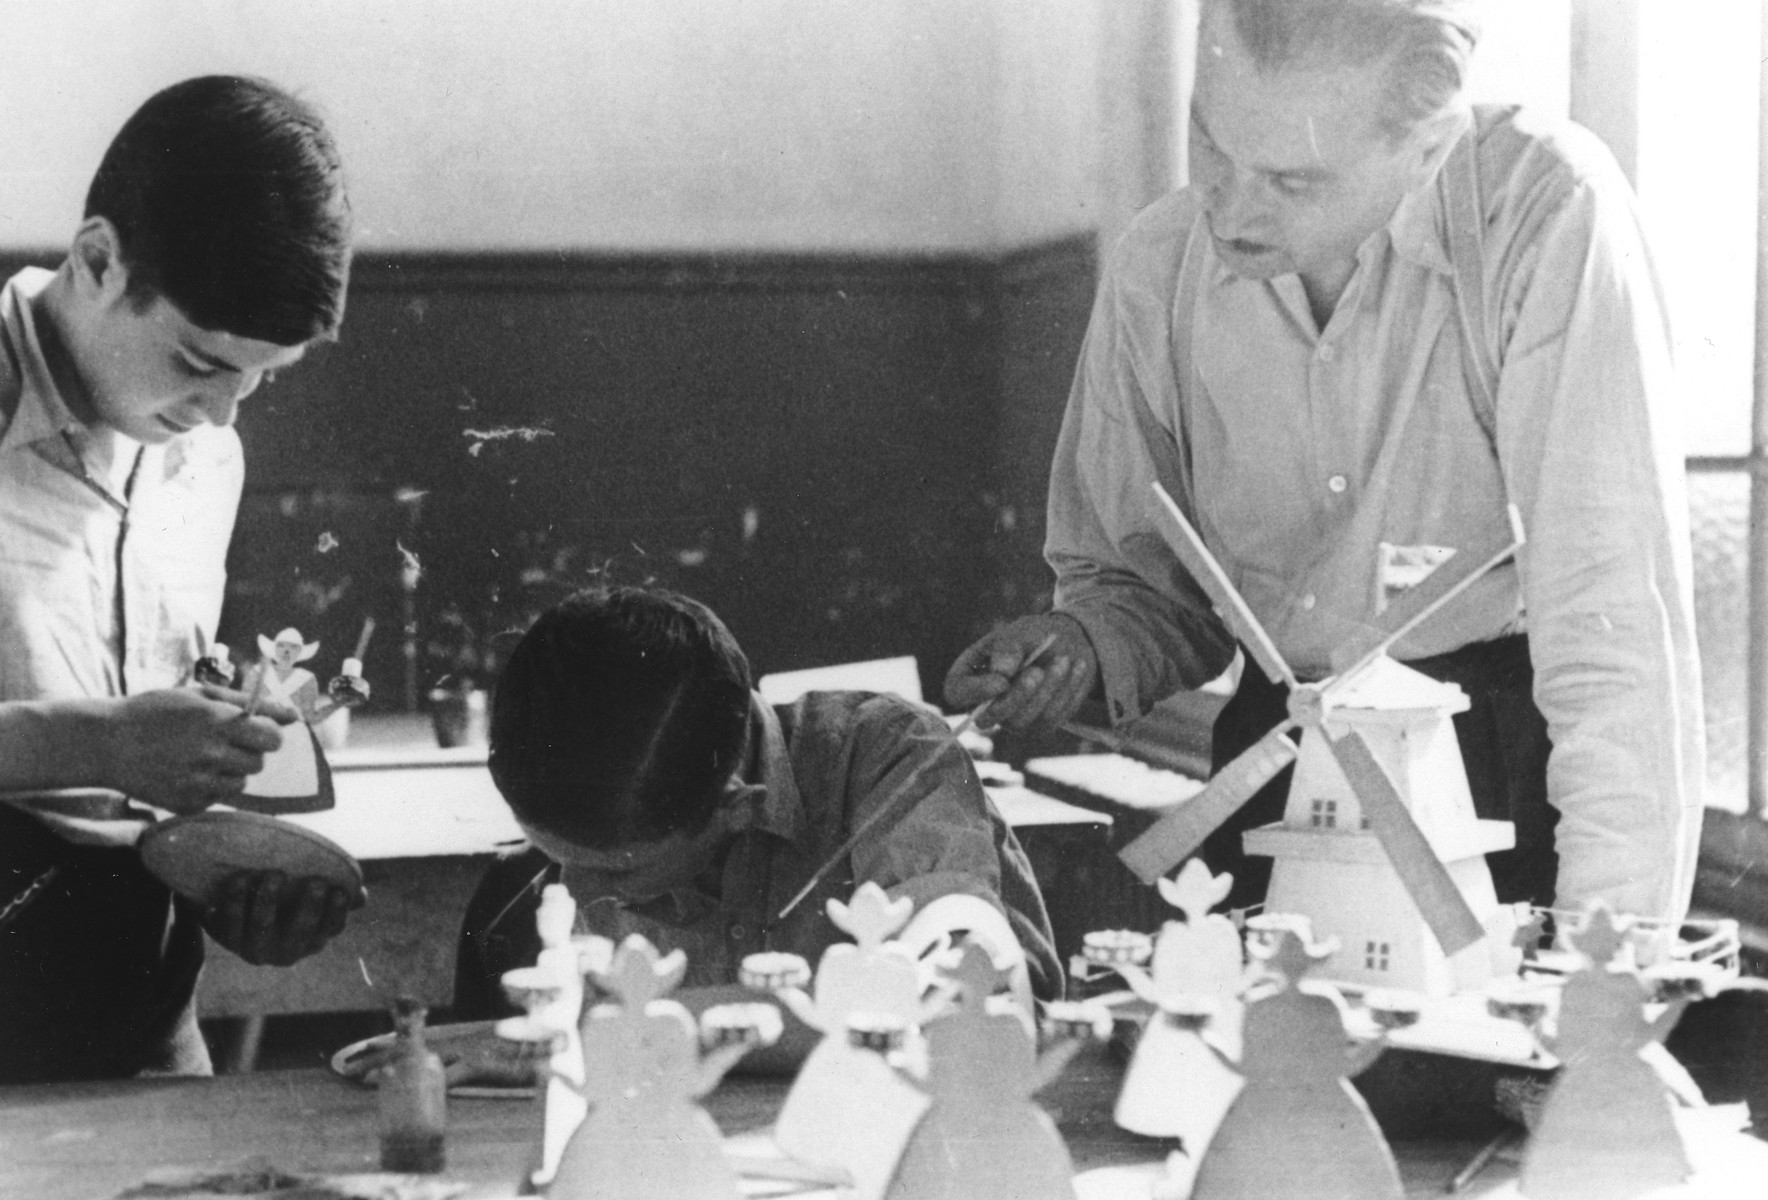 Two Jewish boys make figurines in a woodworking class in the Ecouis children's home.  Pictured at the left is Hans Oster, and in the center is Ivar Segalowitz.